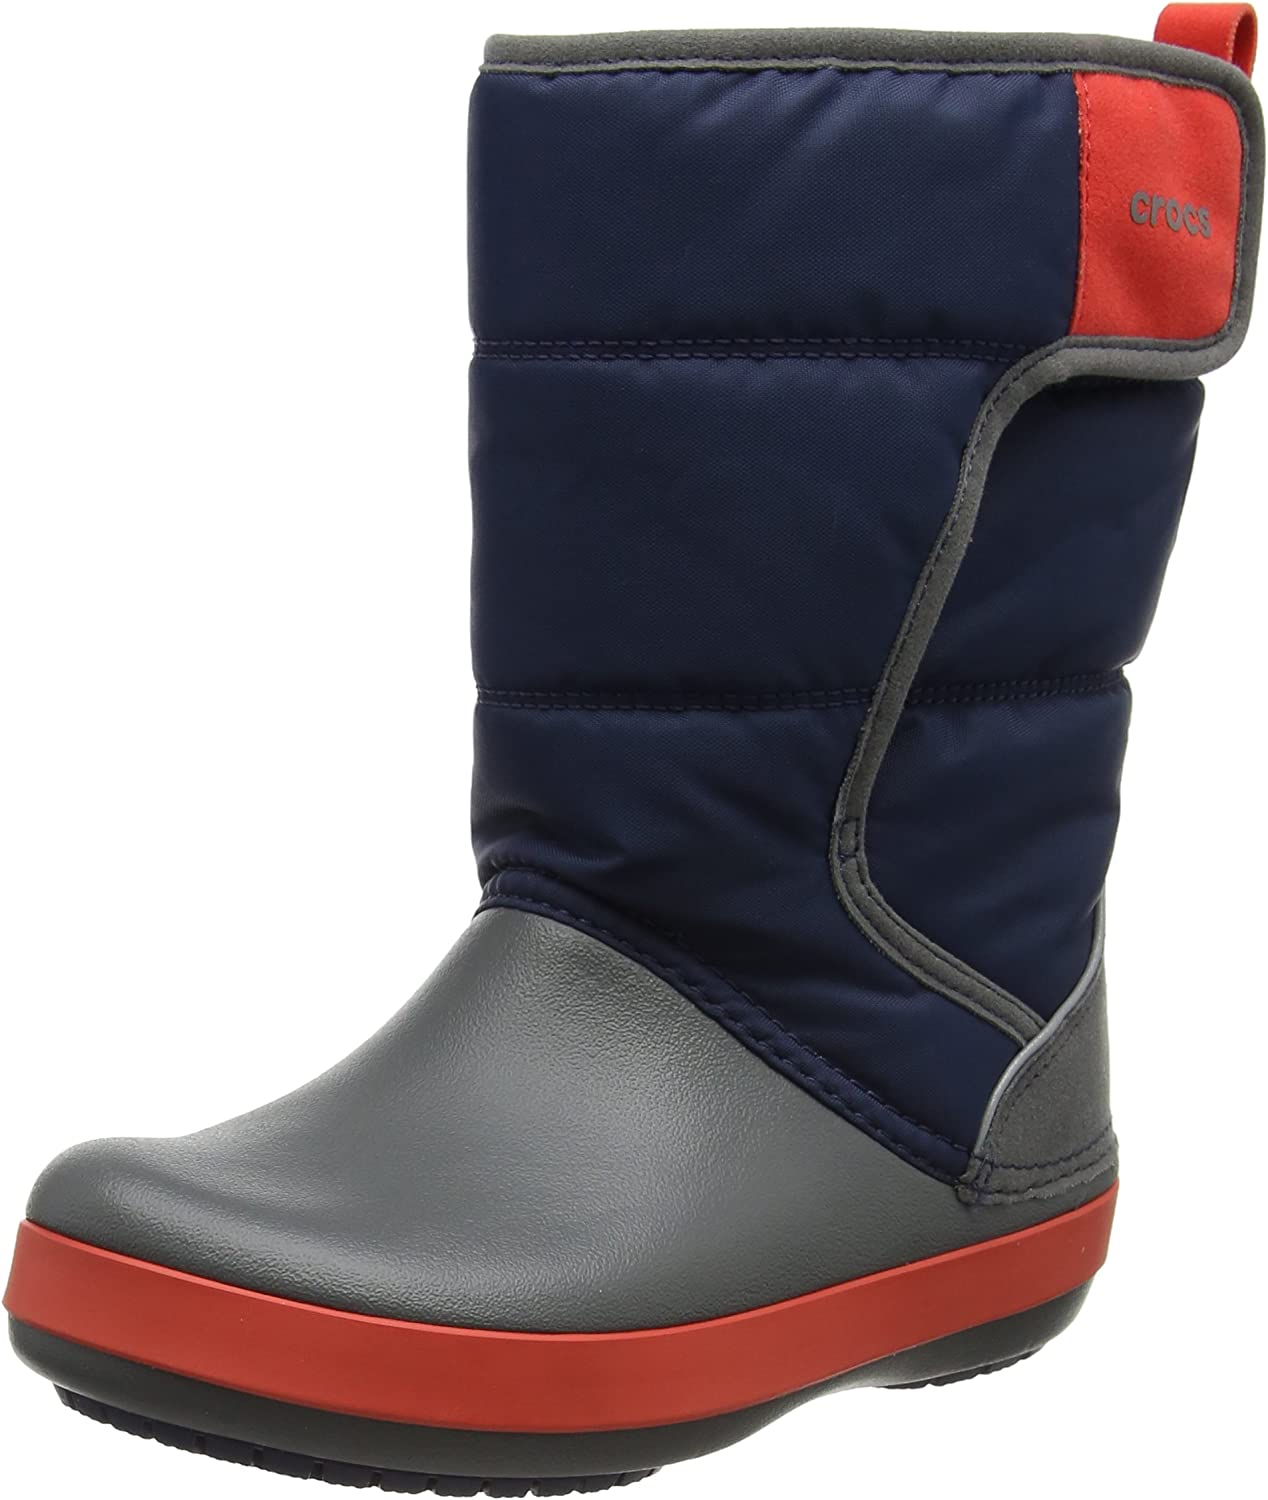 Crocs LodgePoint Snow Boot discount Navy Slate Little 2 Ranking TOP4 Kid US M Grey